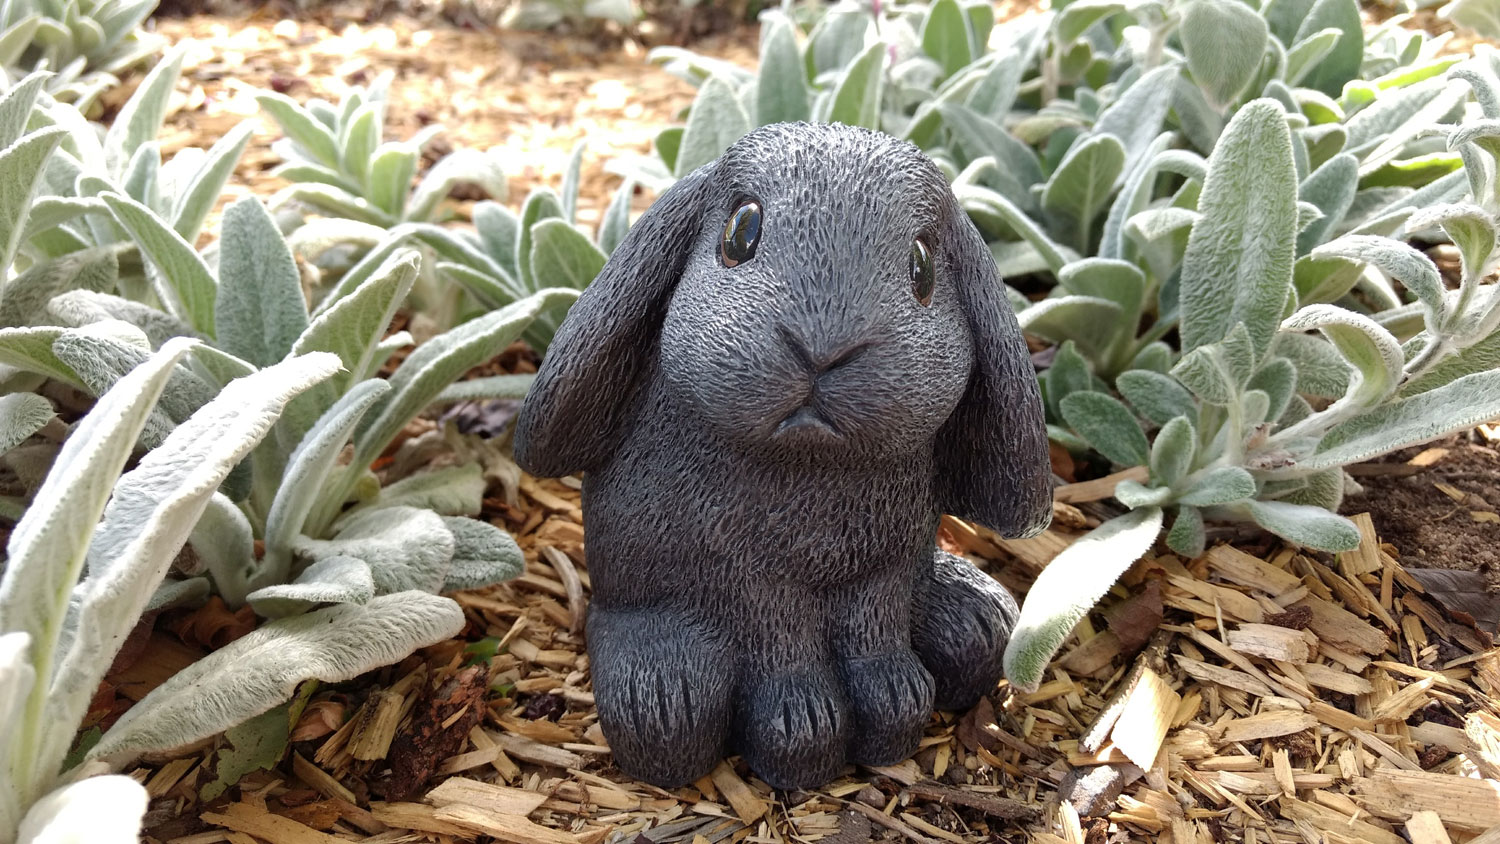 choice-bunny-cabbage-patch11 (1500x844).jpg